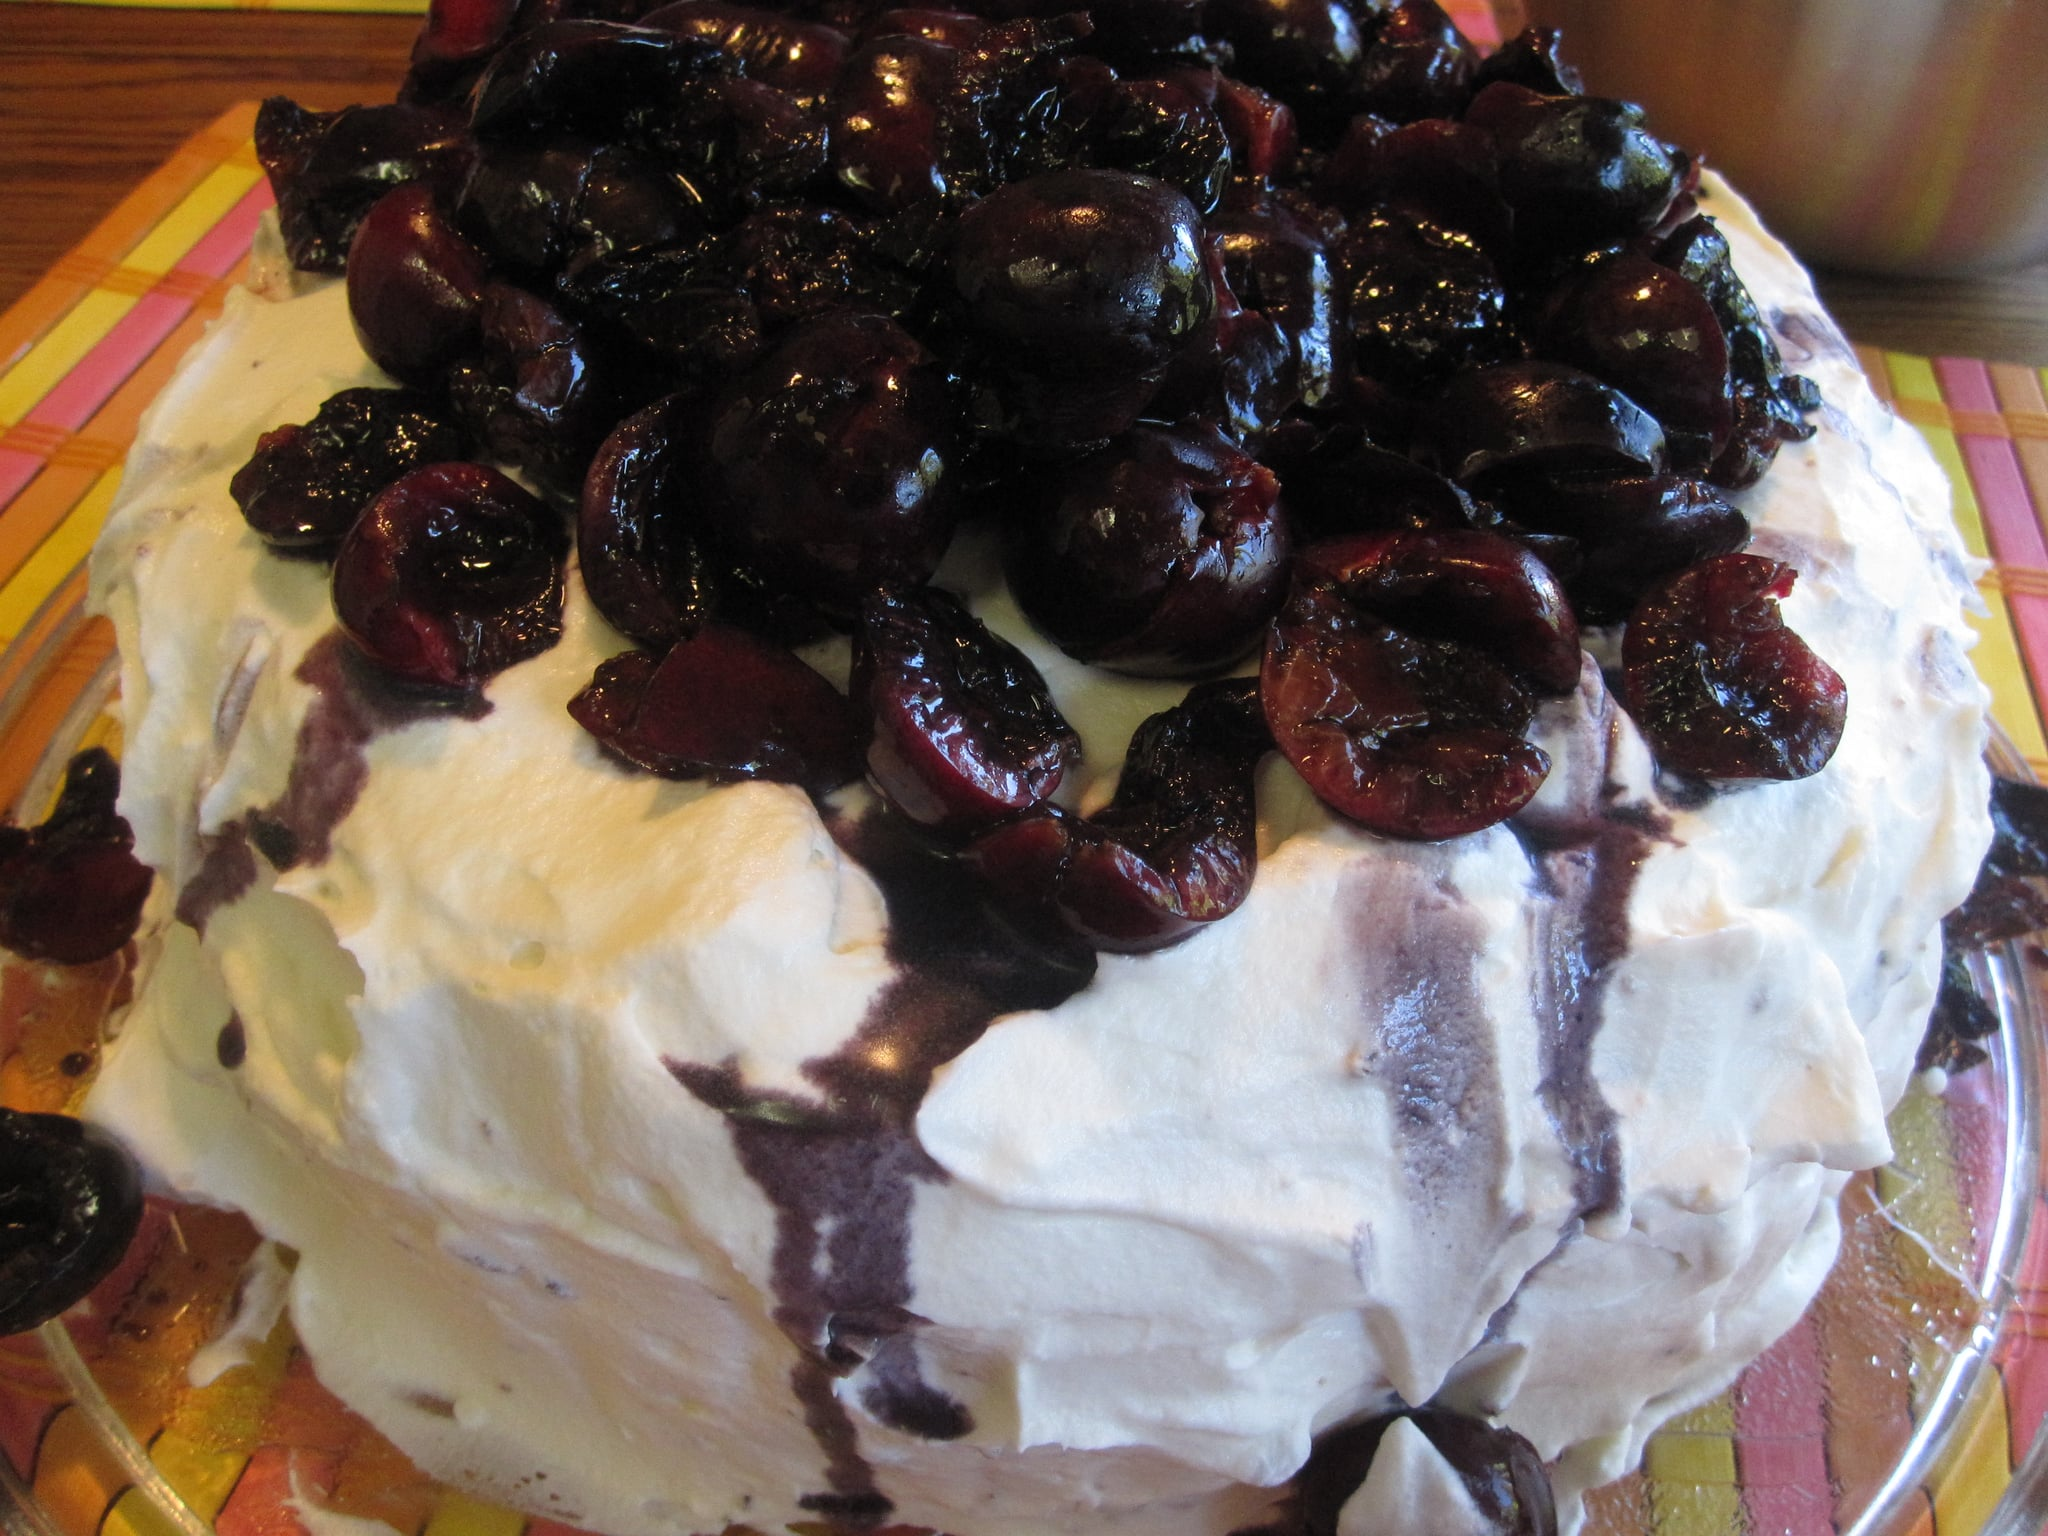 Chocolate Cake With Cream Cheese Frosting And Cherries